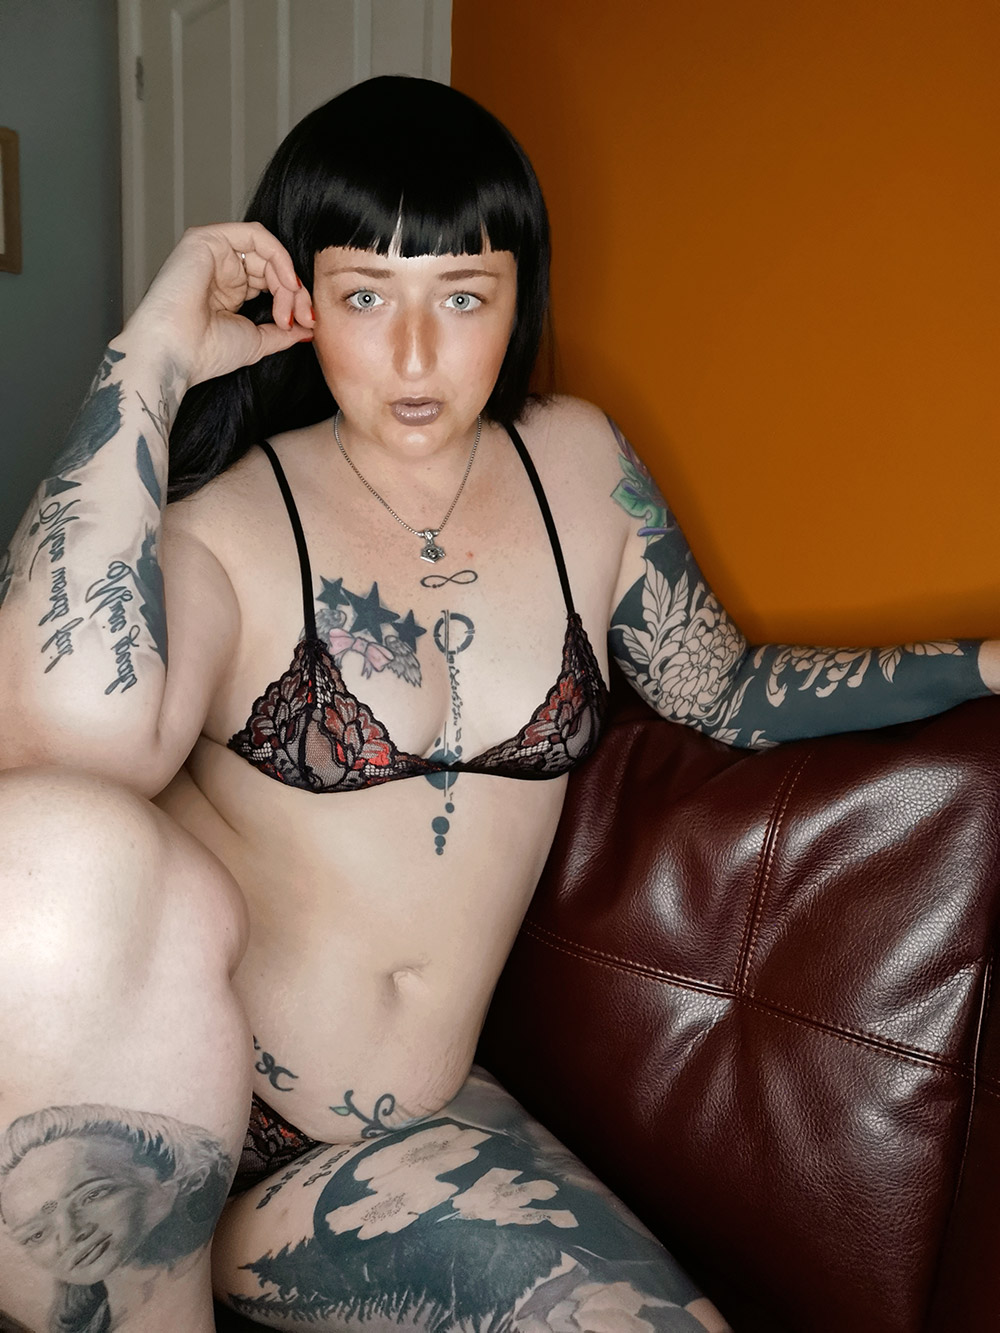 inked-leah-tattooed-alt-model-fat-punk-studio-16